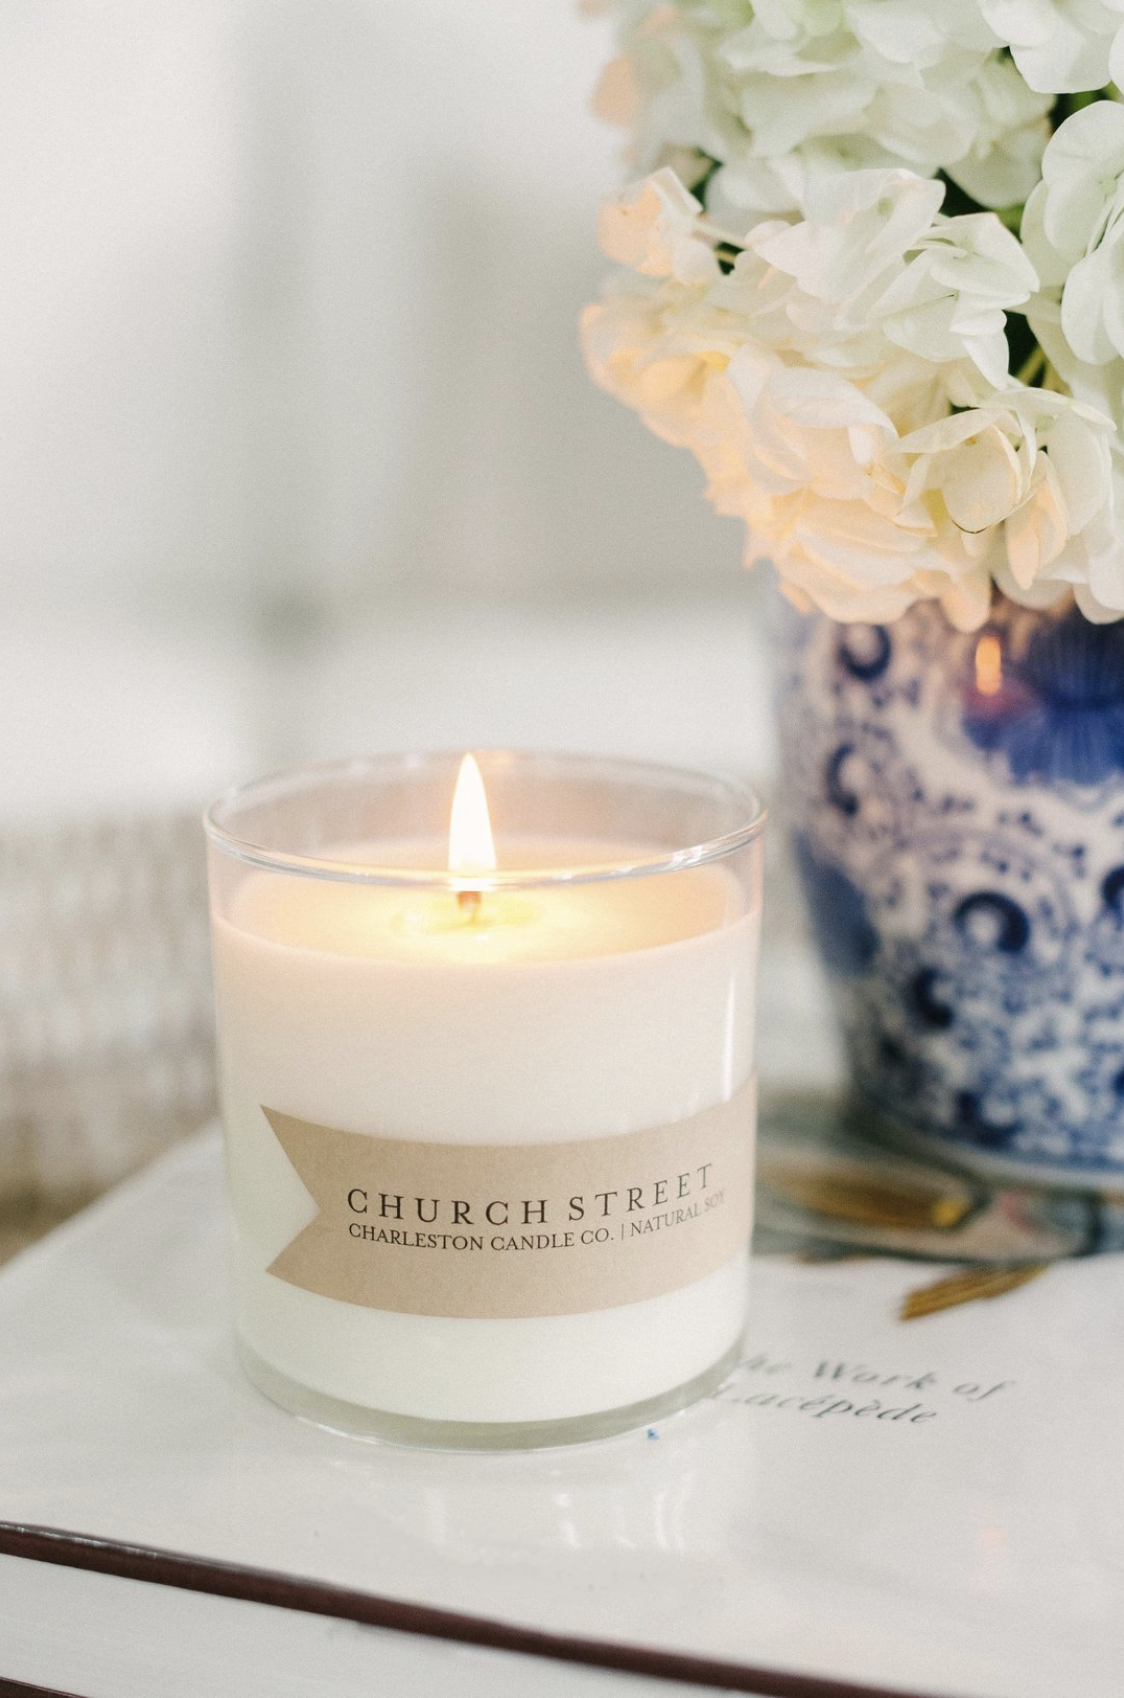 Charleston Candle Co